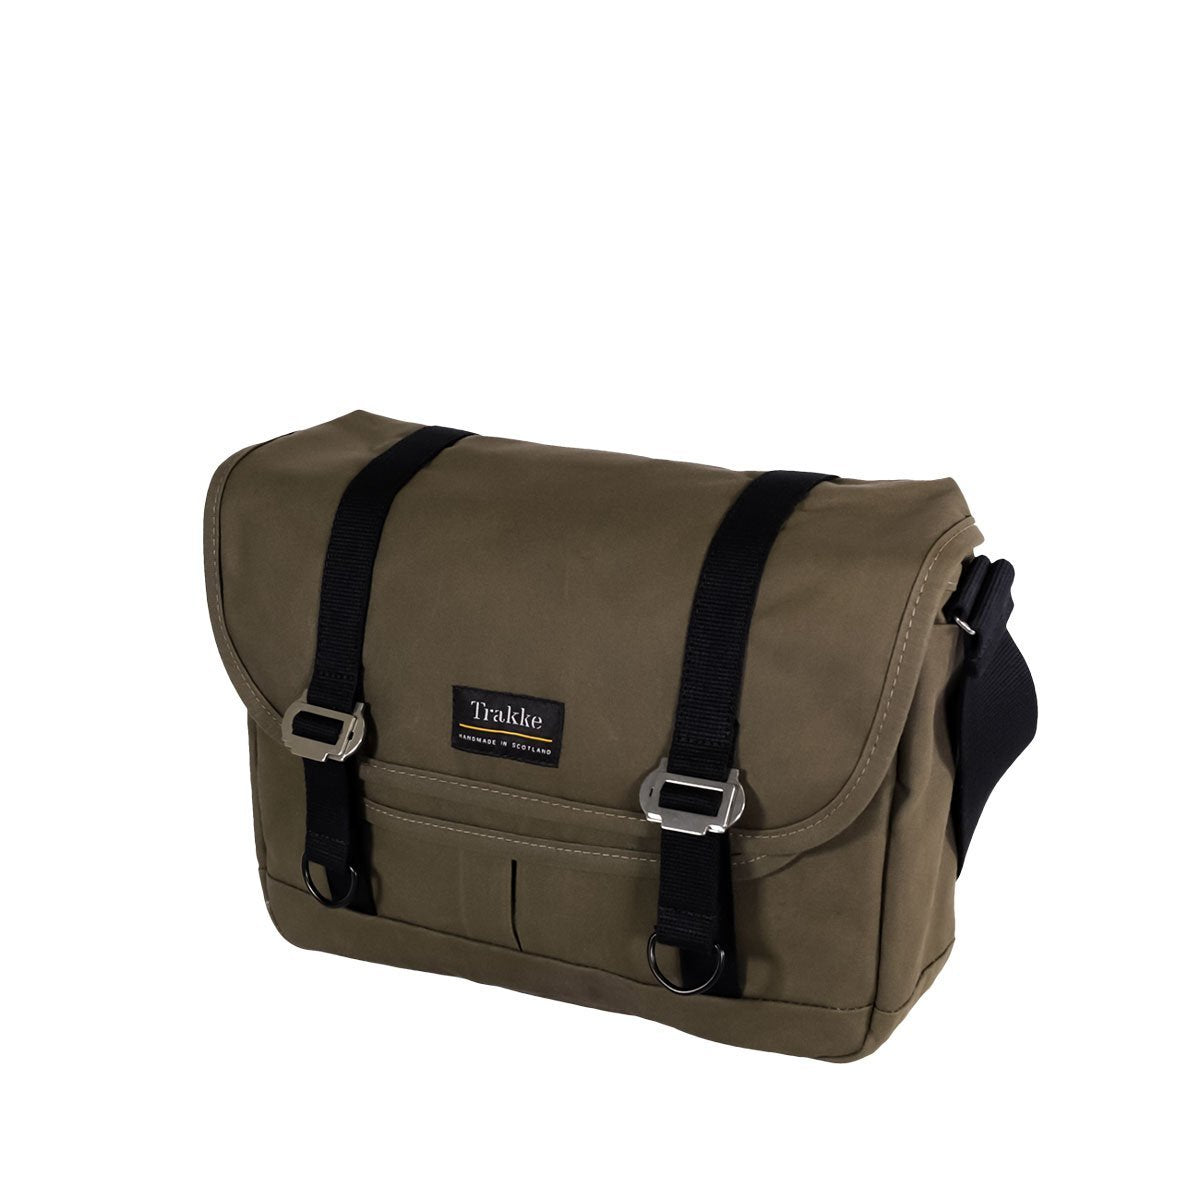 Trakke | NEW Bairn Messenger Bag | Waxed Canvas Laptop Messenger Bag | Olive